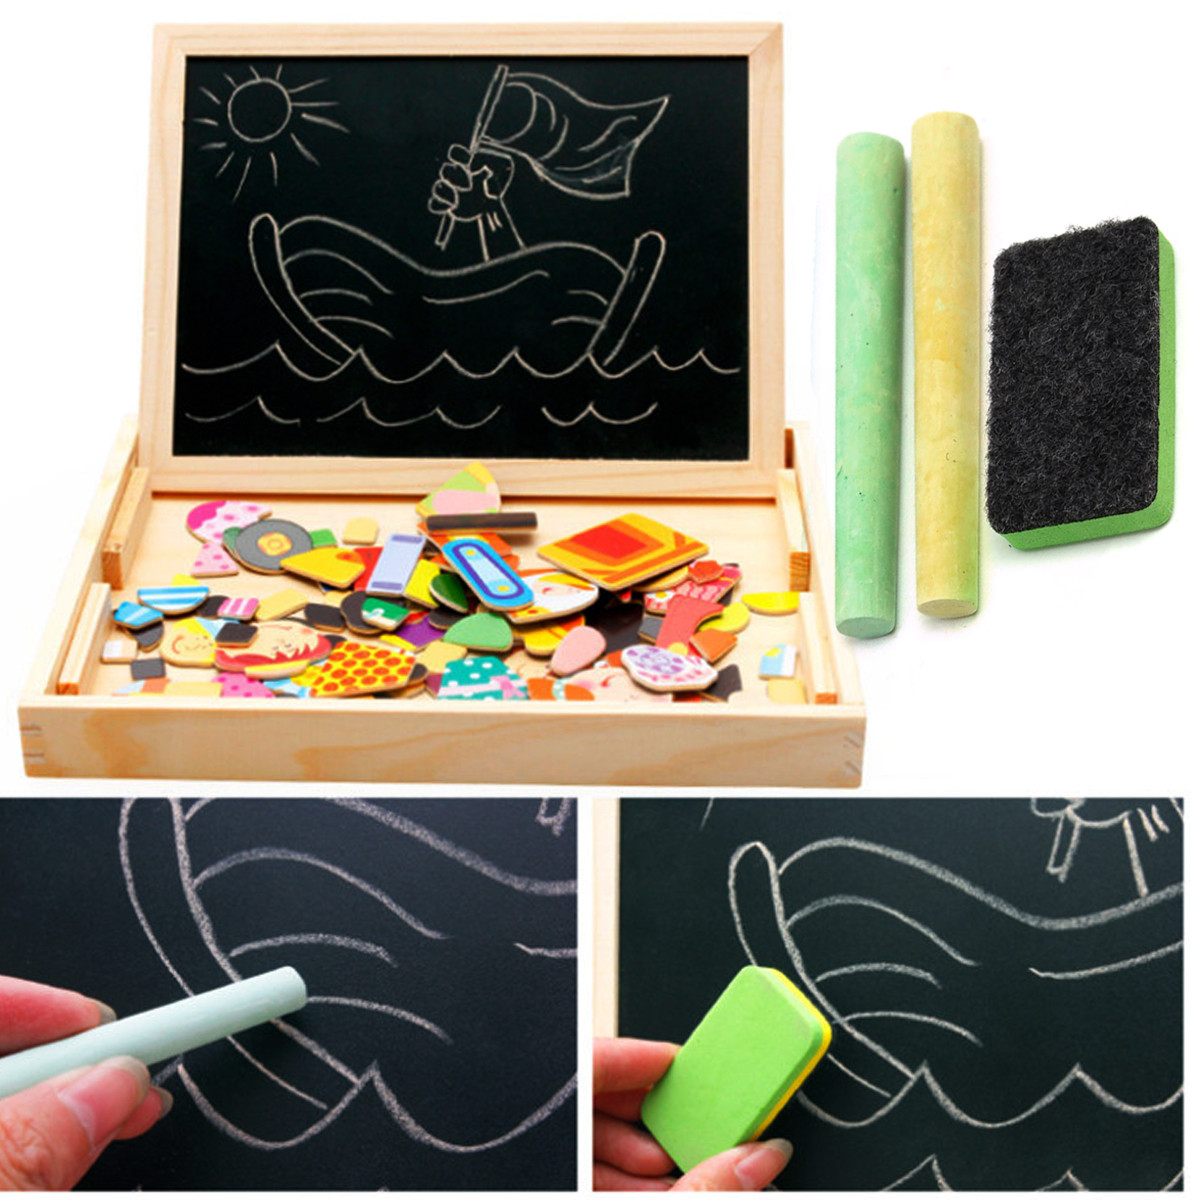 Buy Kids Educational Learning Wooden Magnetic Drawing Board Jigsaw Puzzle Toys